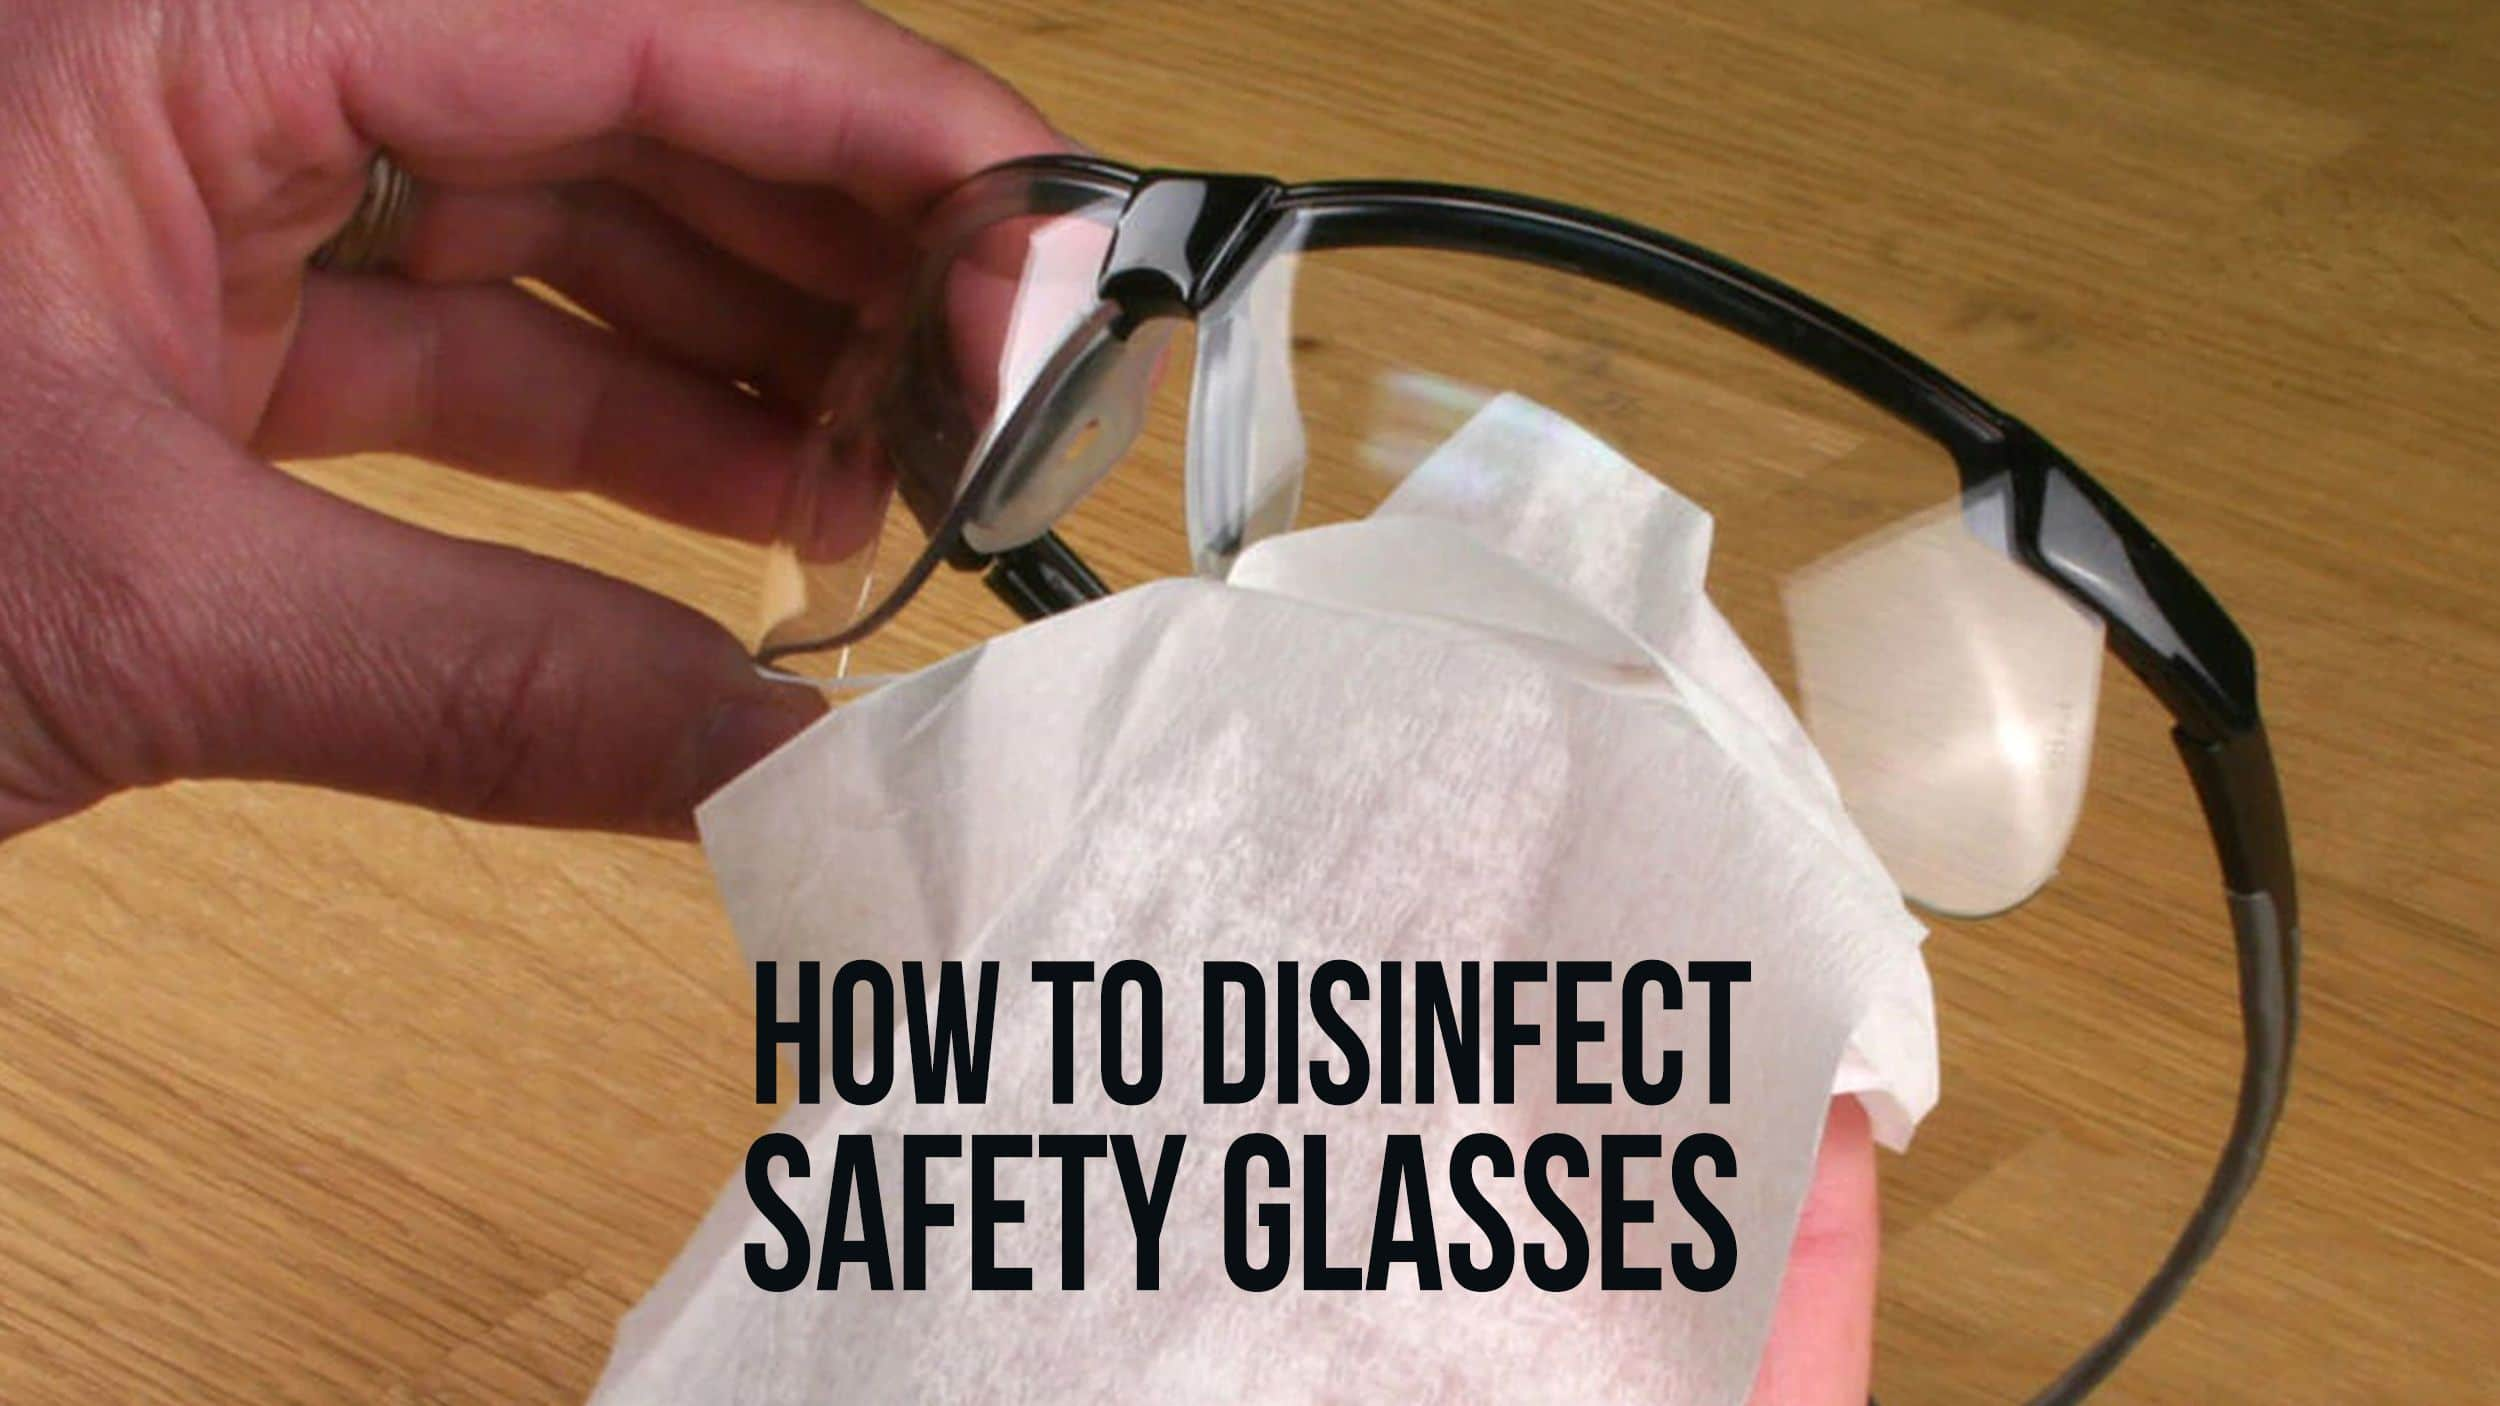 Disinfecting Safety Glasses Header